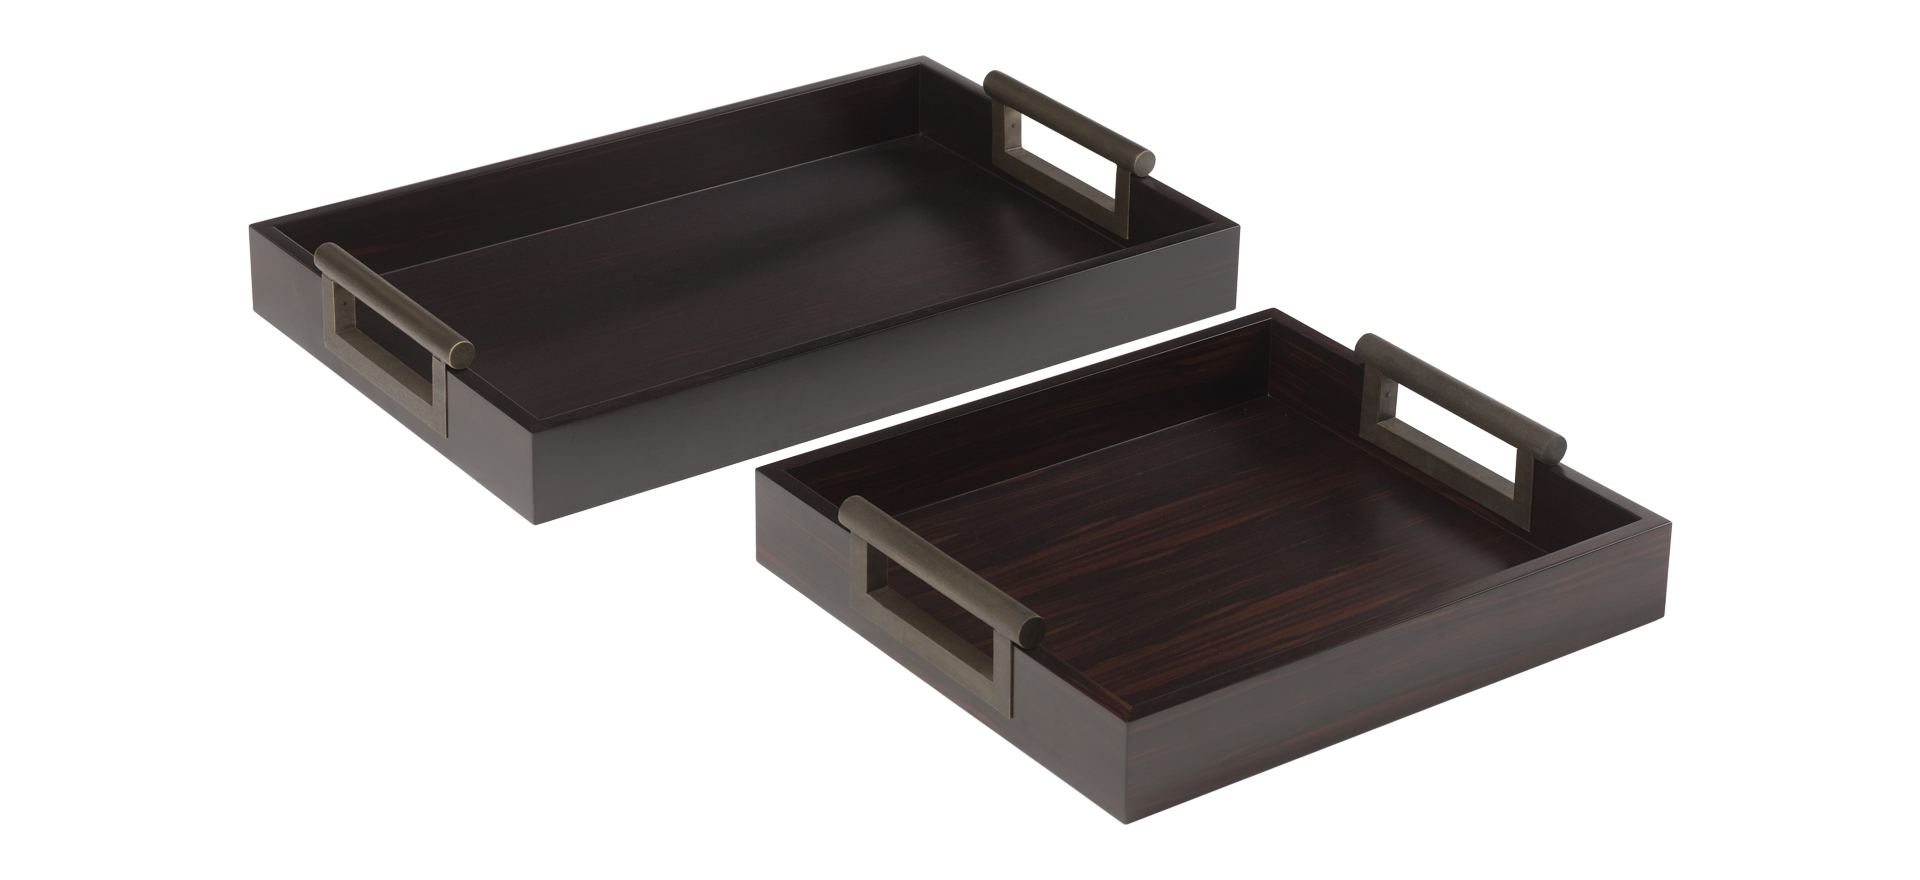 Alfred is a wooden tray with bronze handles, from Promemoria's catalogue | Promemoria